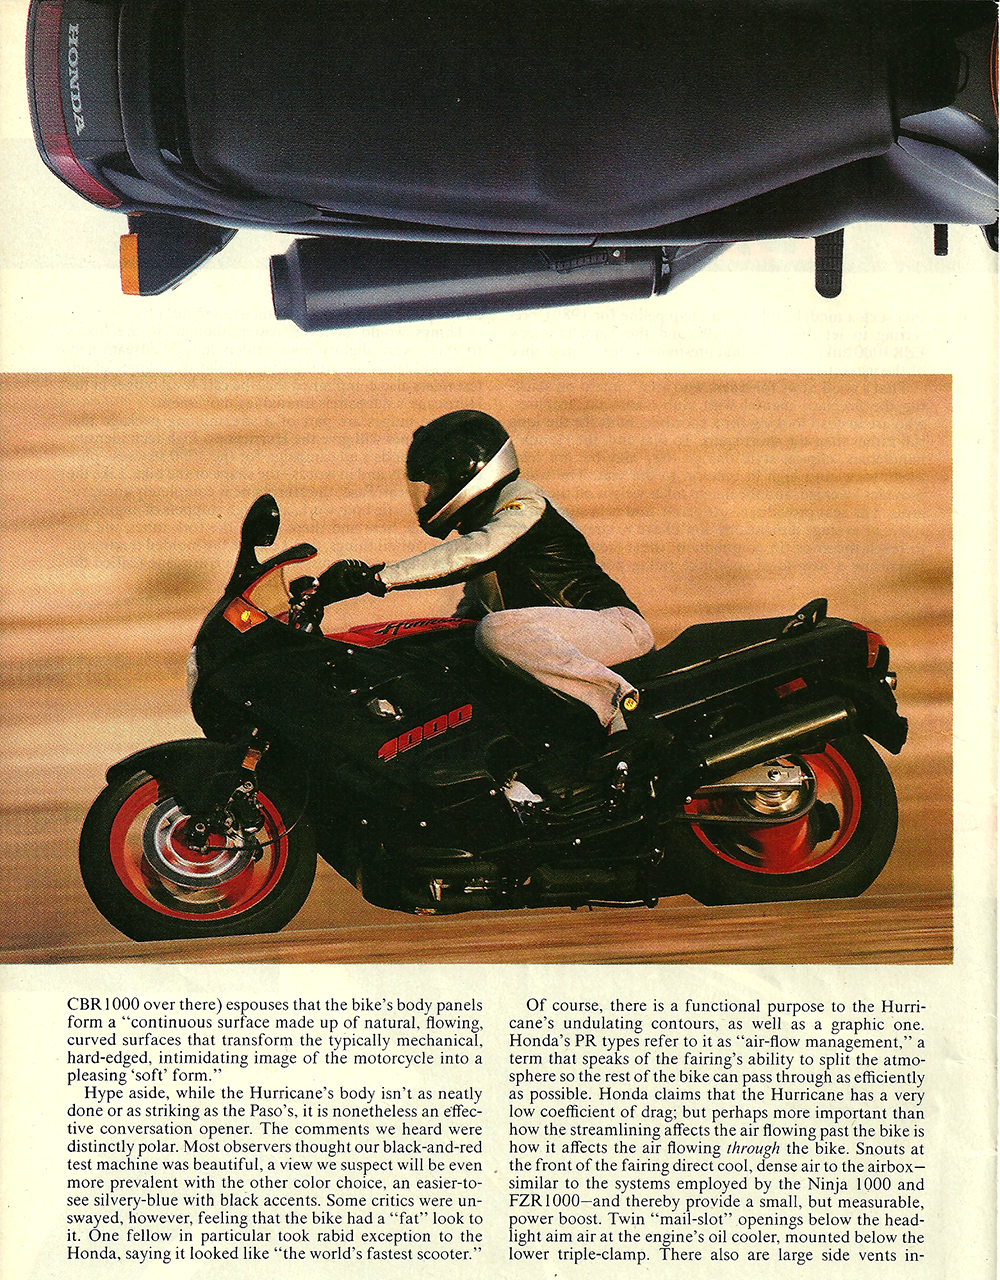 1987 Honda Hurricane 1000 road test 03.jpg